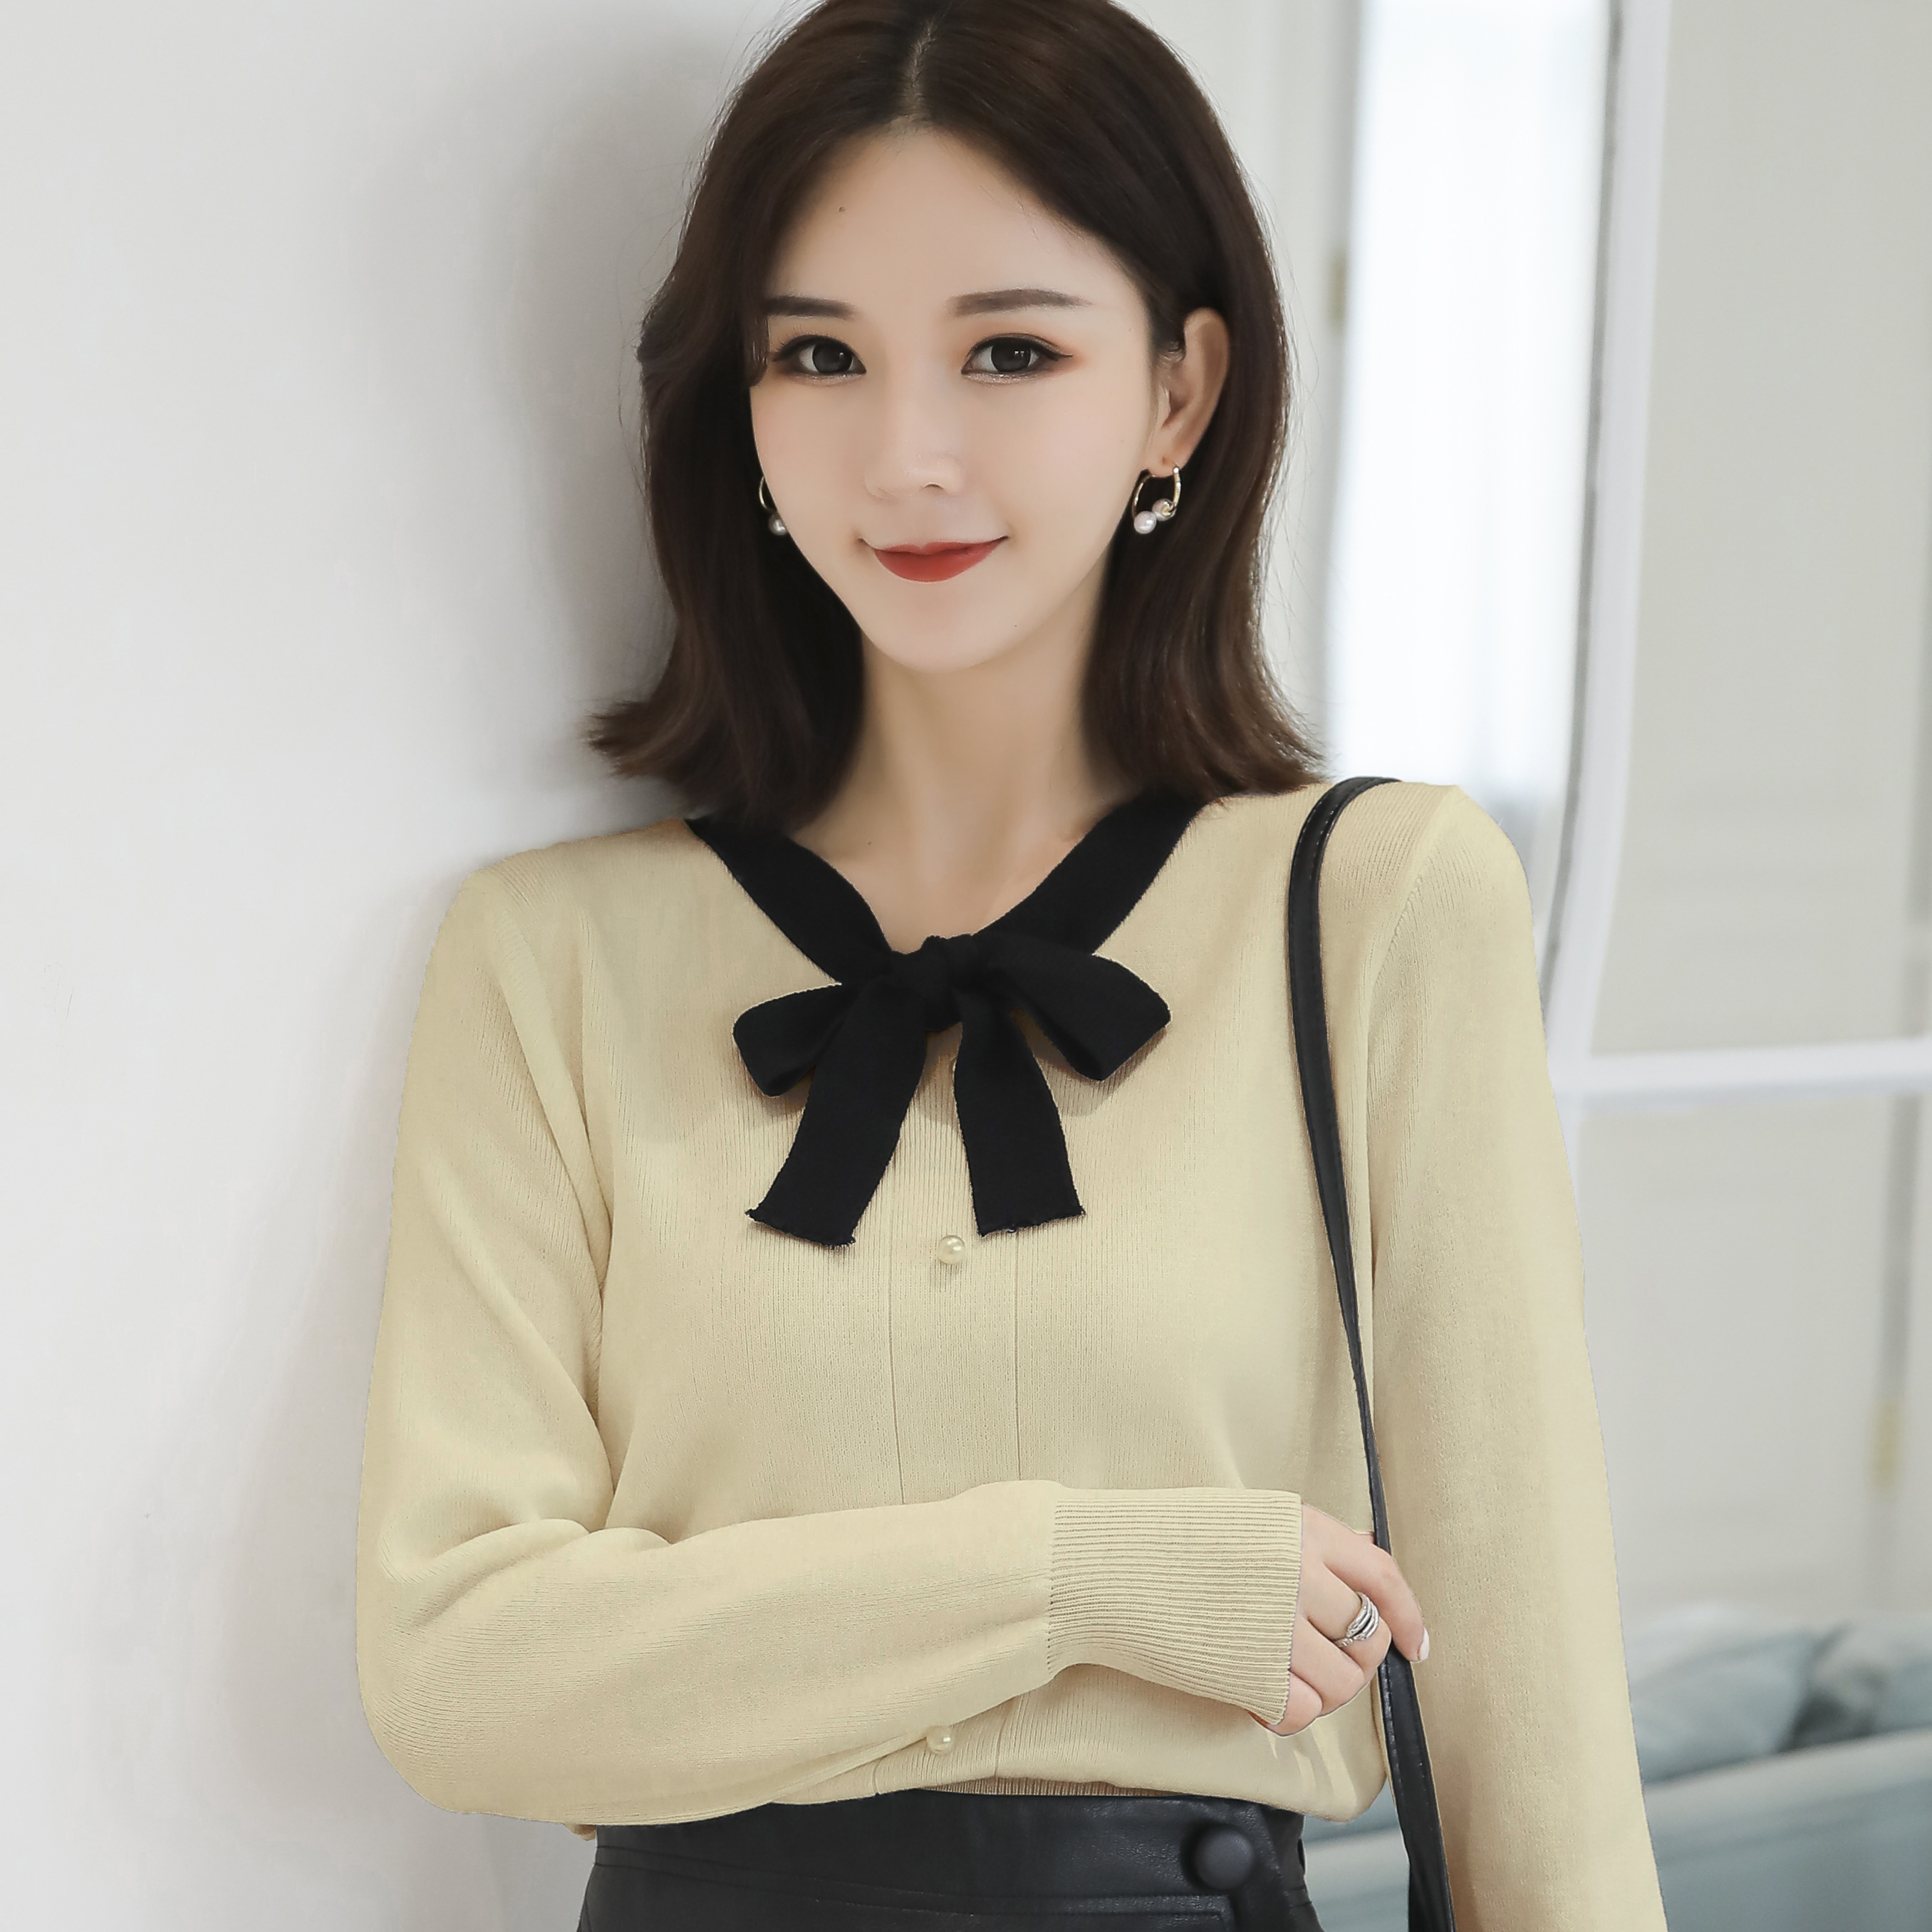 Women 39 s Tops Knitted Korean Version Bow Collar Long Sleeve Casual Shirts Winter 2019 Autumn Temperament Knitted Sweater 11G in Pullovers from Women 39 s Clothing